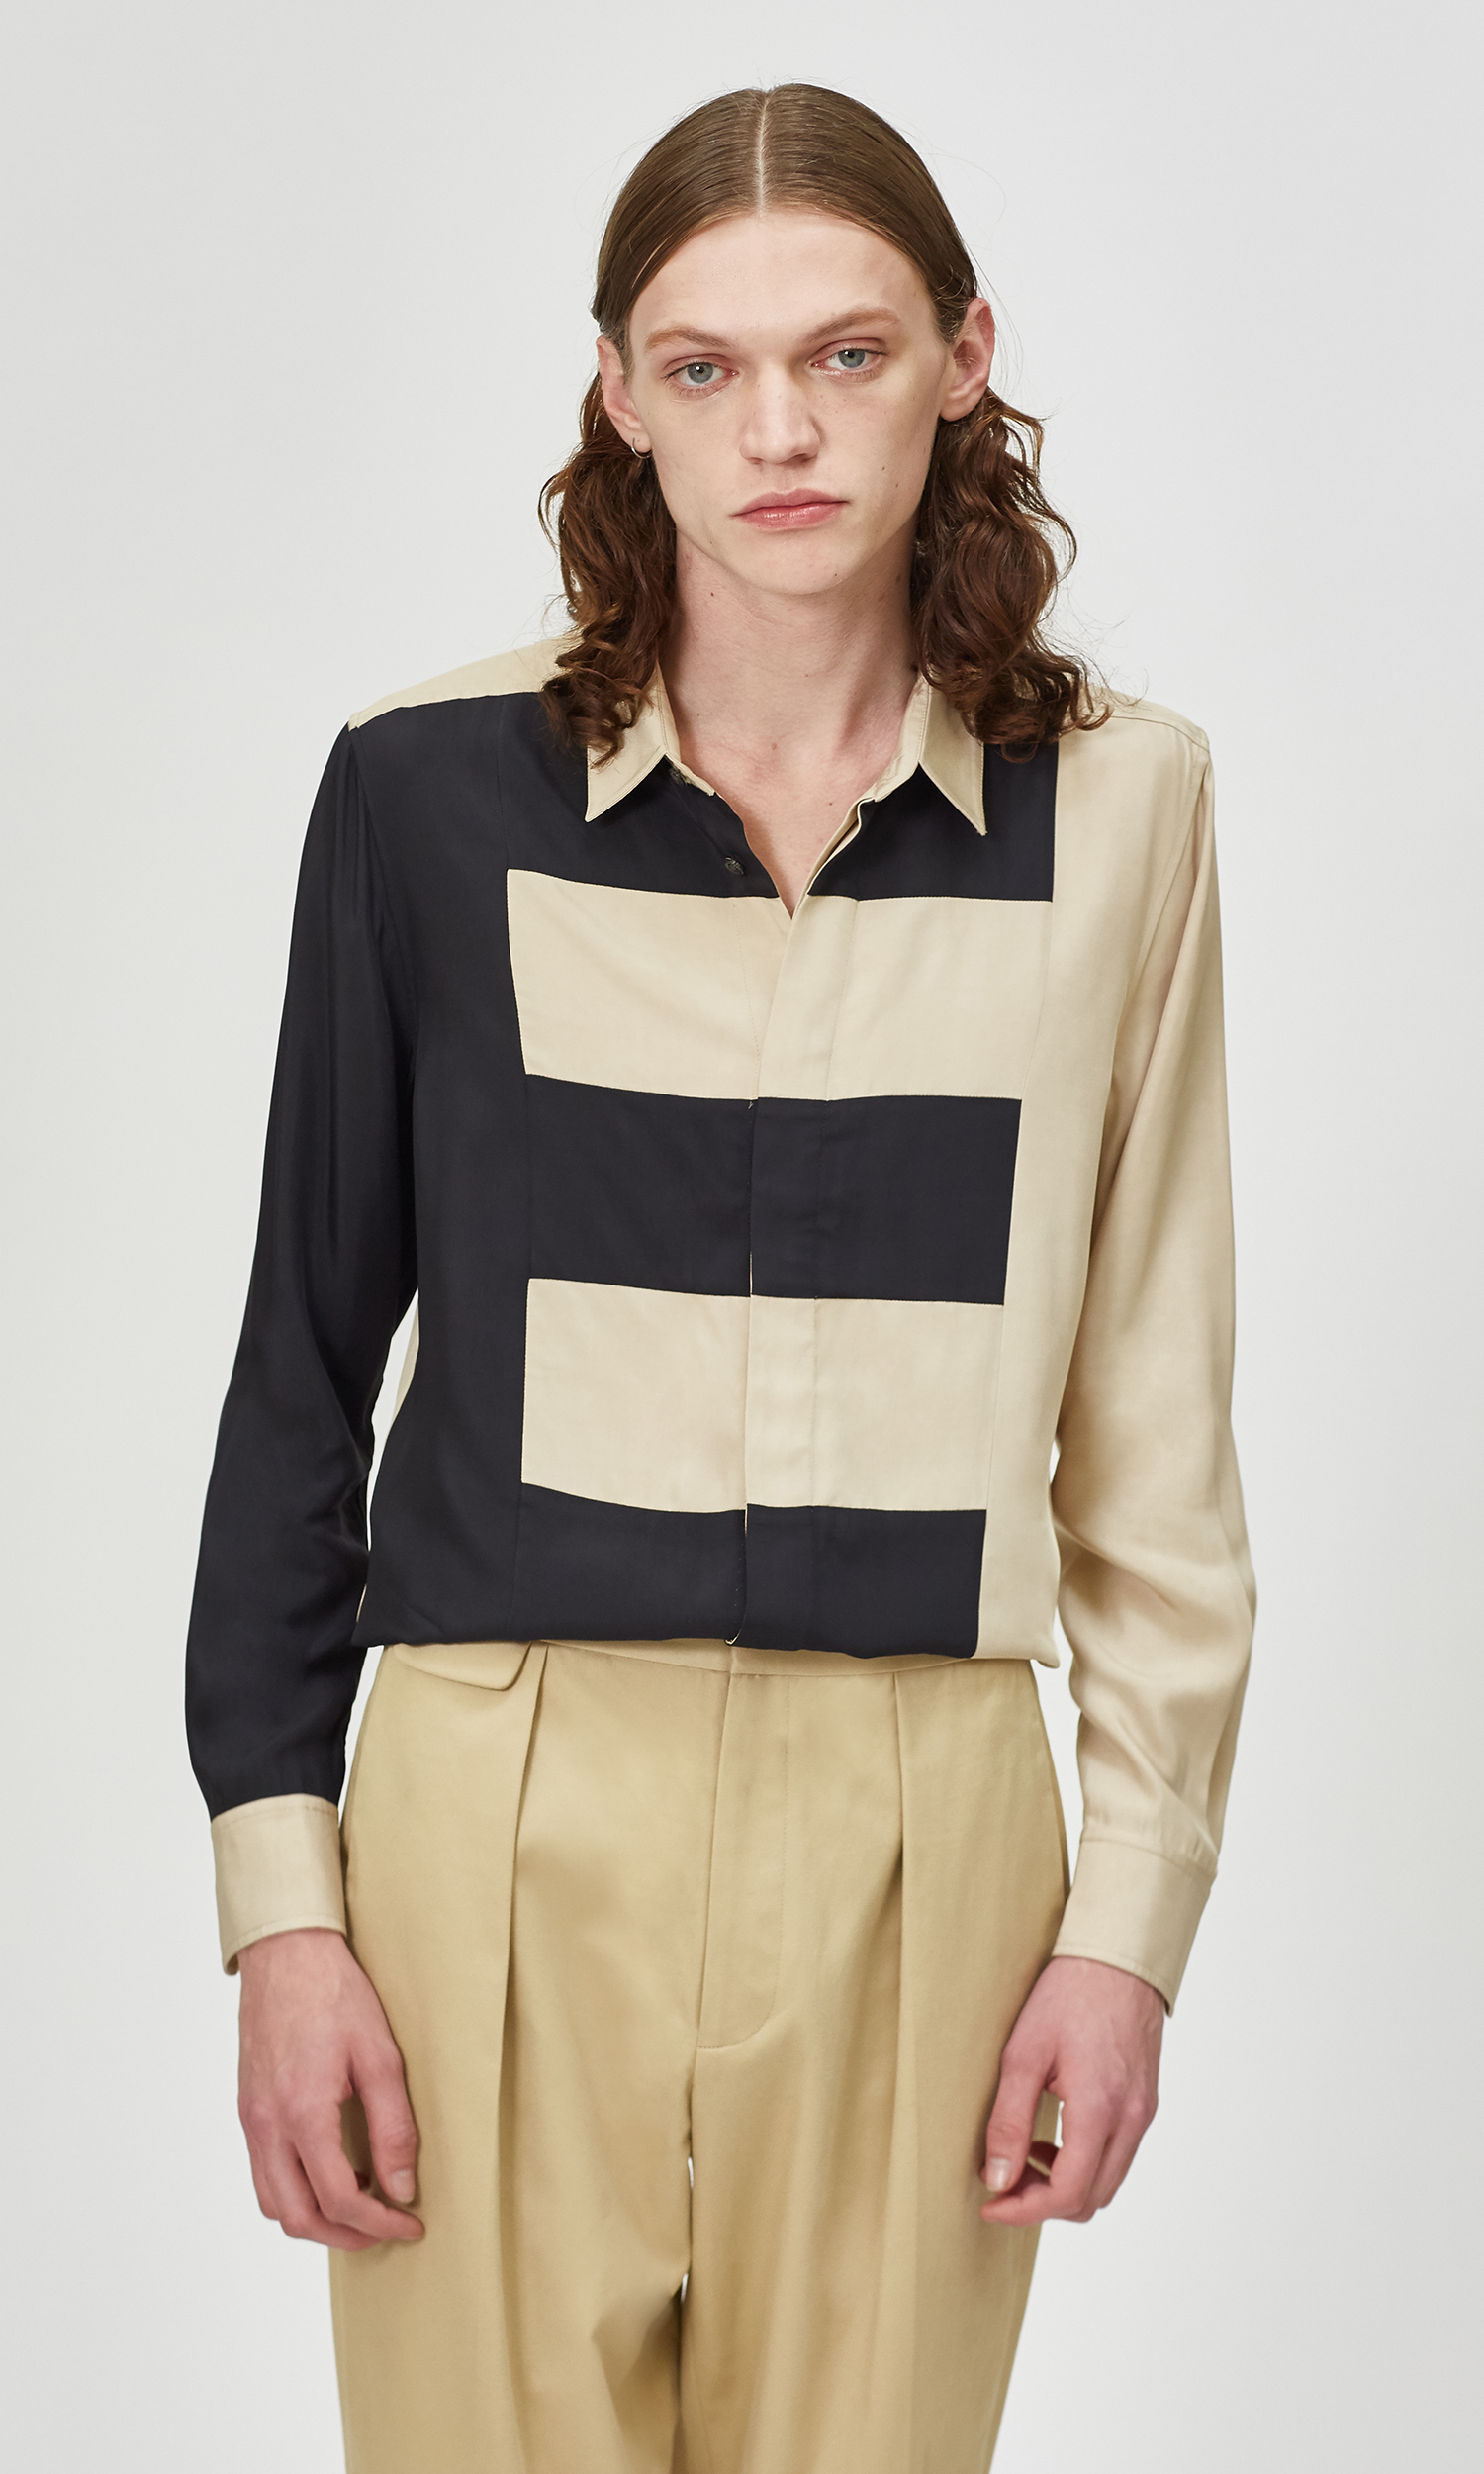 The Slim Fit Color Block E Shirt by Equipment